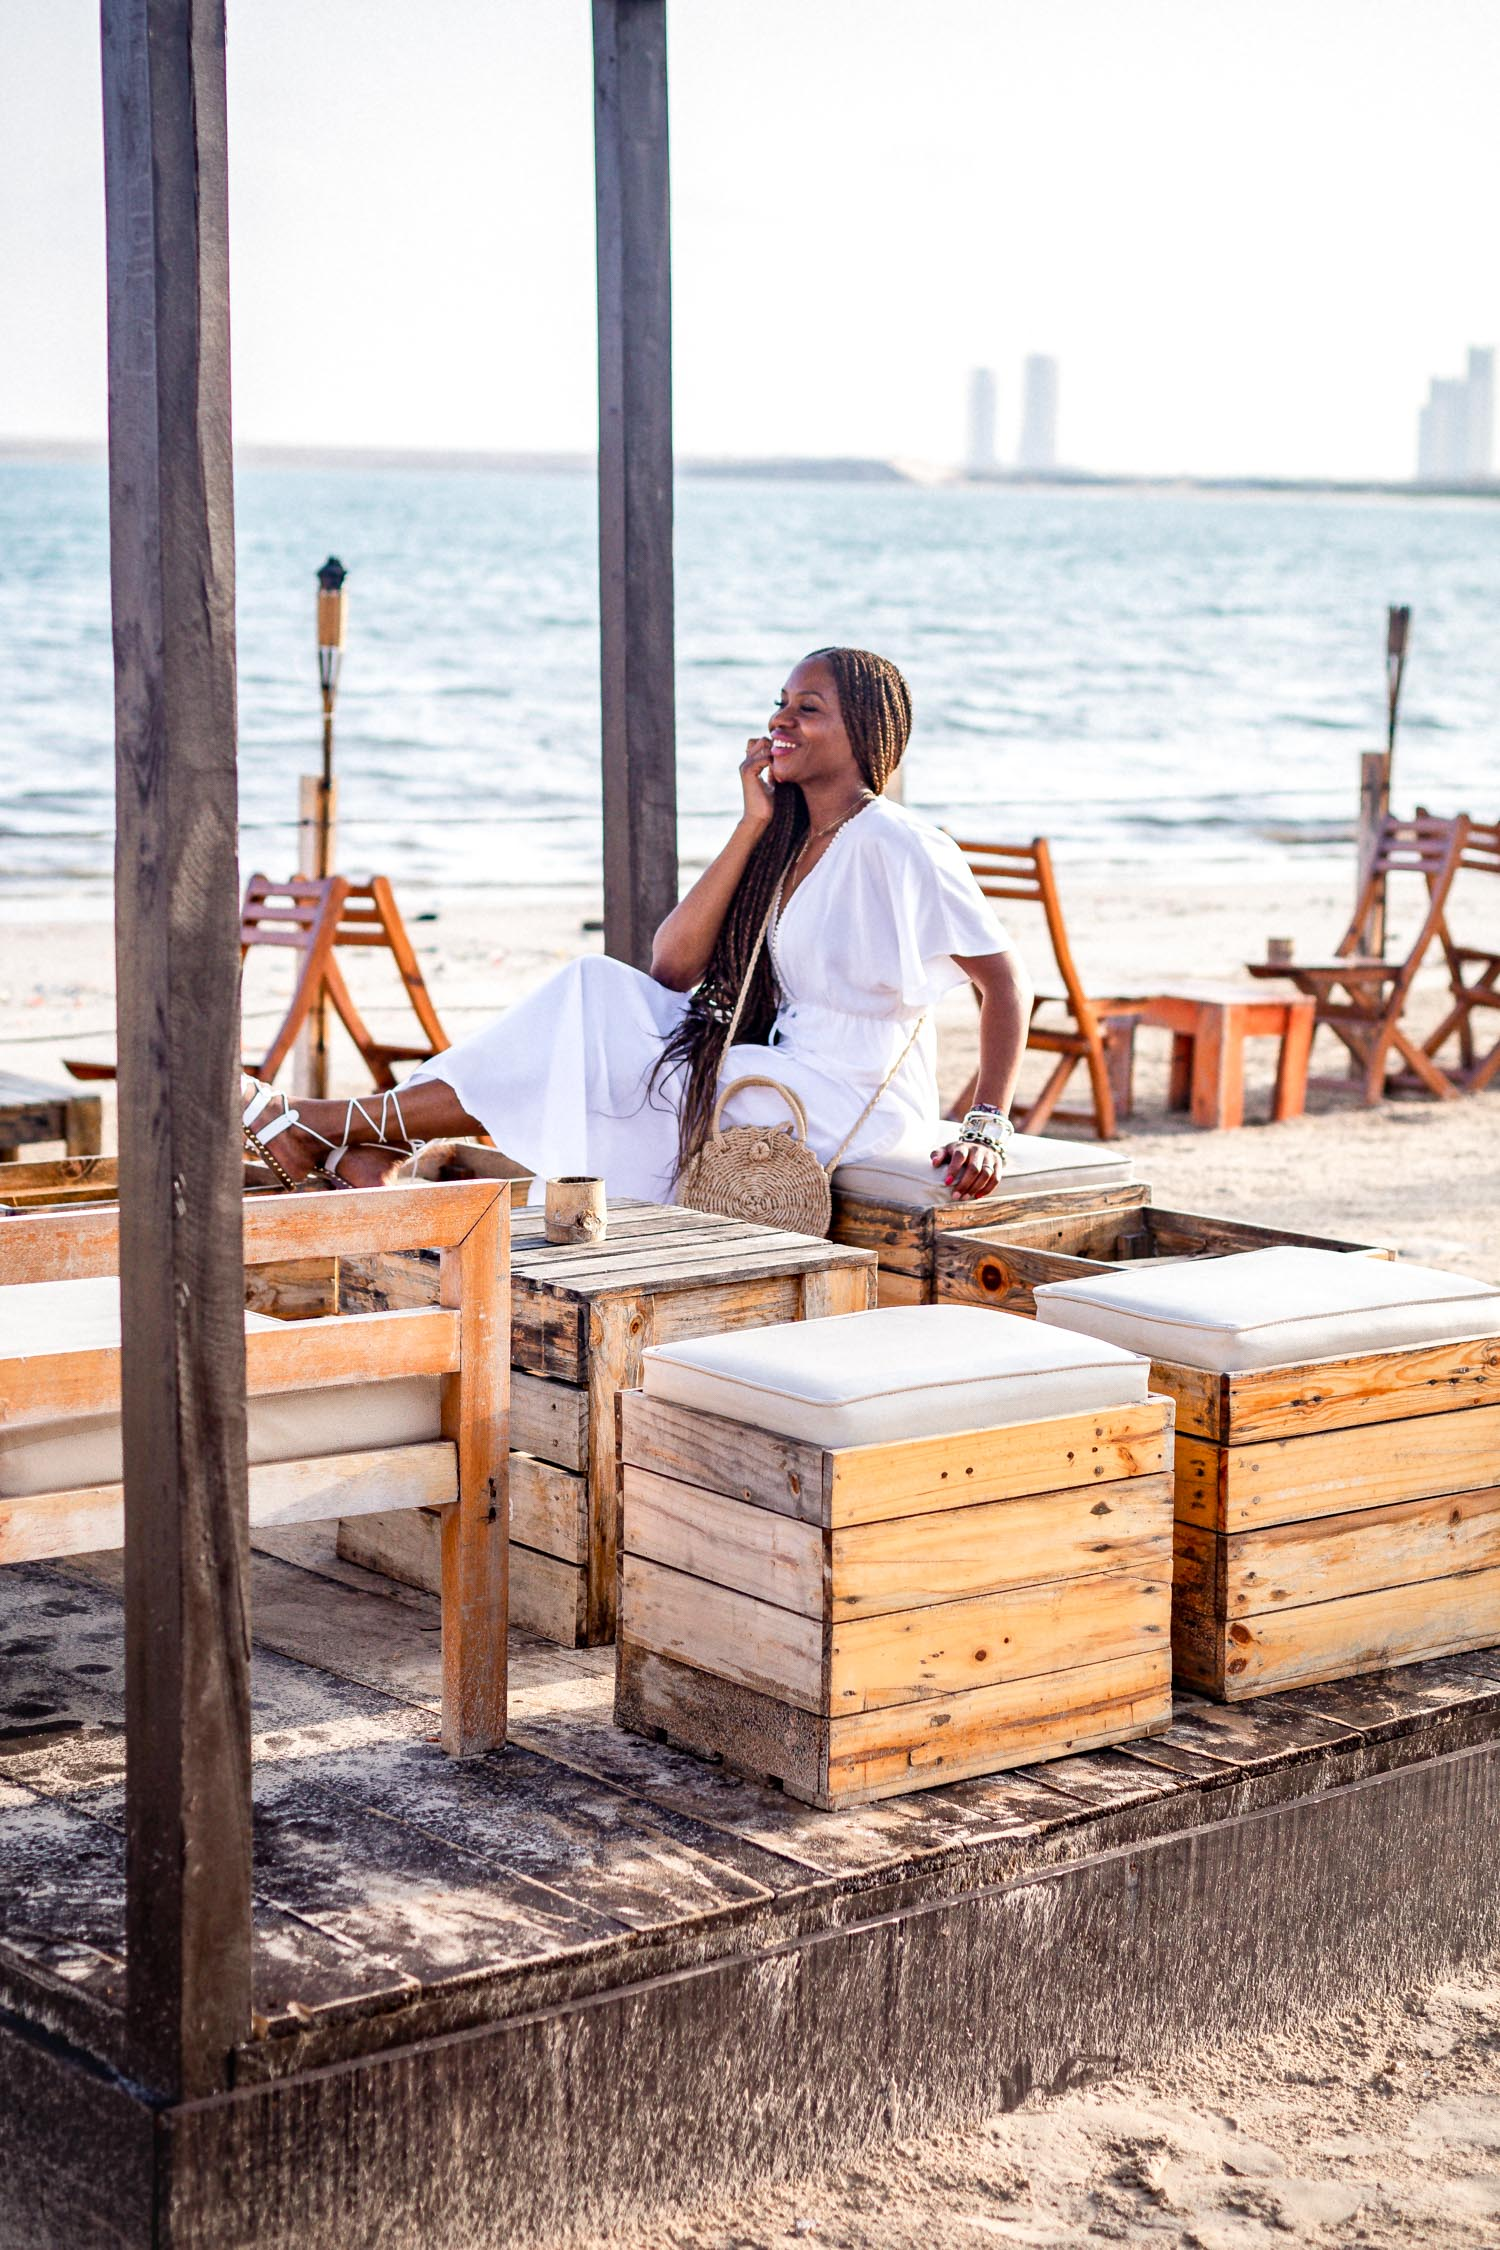 Atlanta fashion and lifestyle blogger Monica wearing walmart white midi dress, straw cross body bag, and white galdiator sandals at moist beach in lagos nigeria, what to wear on a tropical getaway